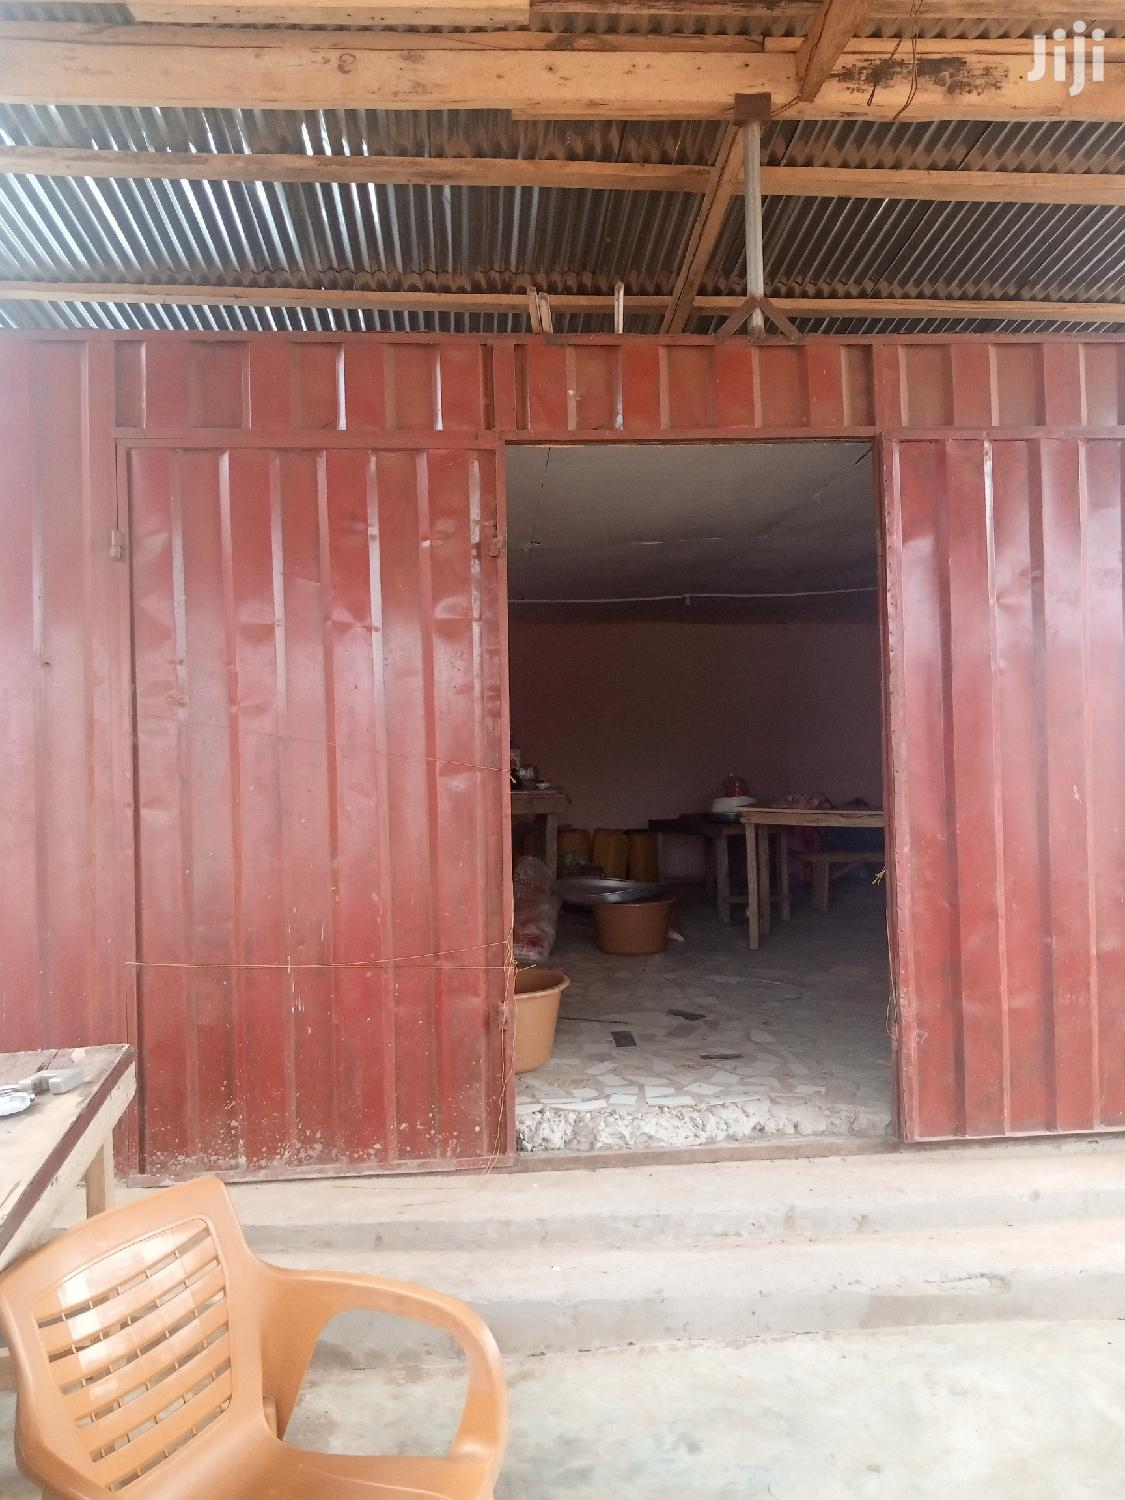 40×15 Feet Land With Shop For Sale At Ashaiman Market